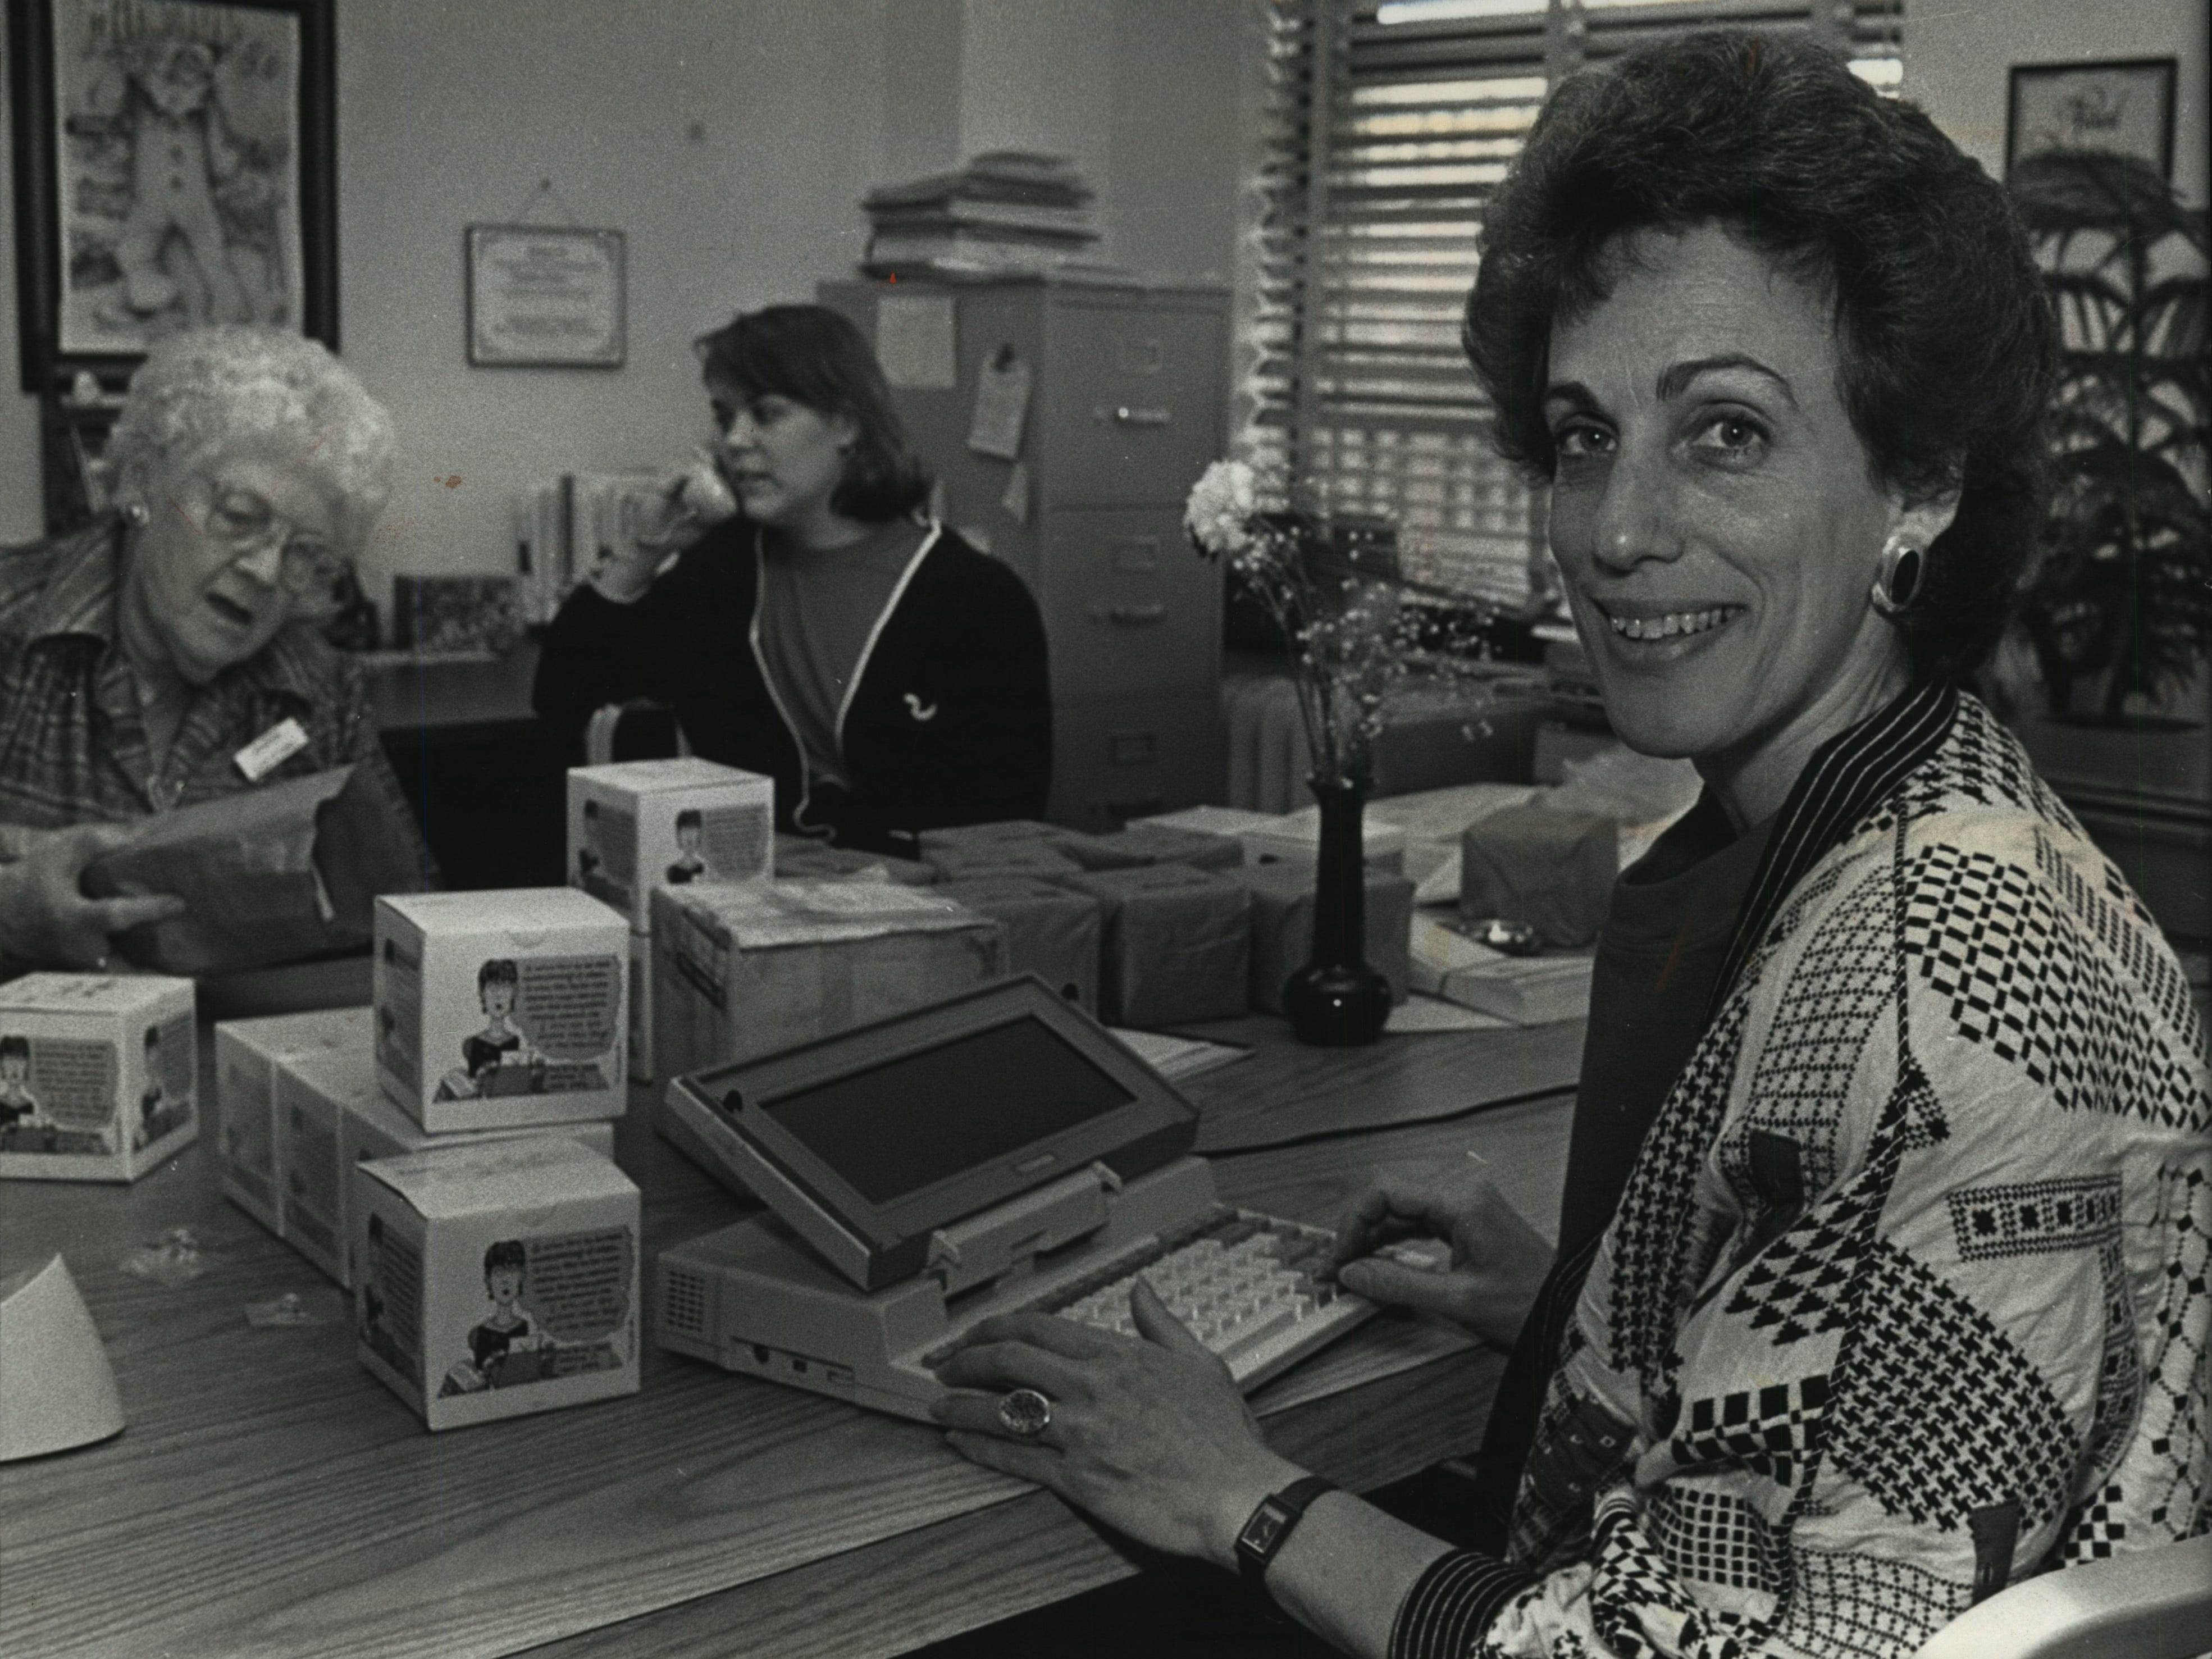 Ellen Bravo an anti-war activists in the 60s, now is full-time organizer of Milwaukee for 9to5, which seeks an improved lot for working women, especially those in clerical roles. Here she works with Ellen Peternell, a volunteer and Barbara Otto, director of program and public affairs.